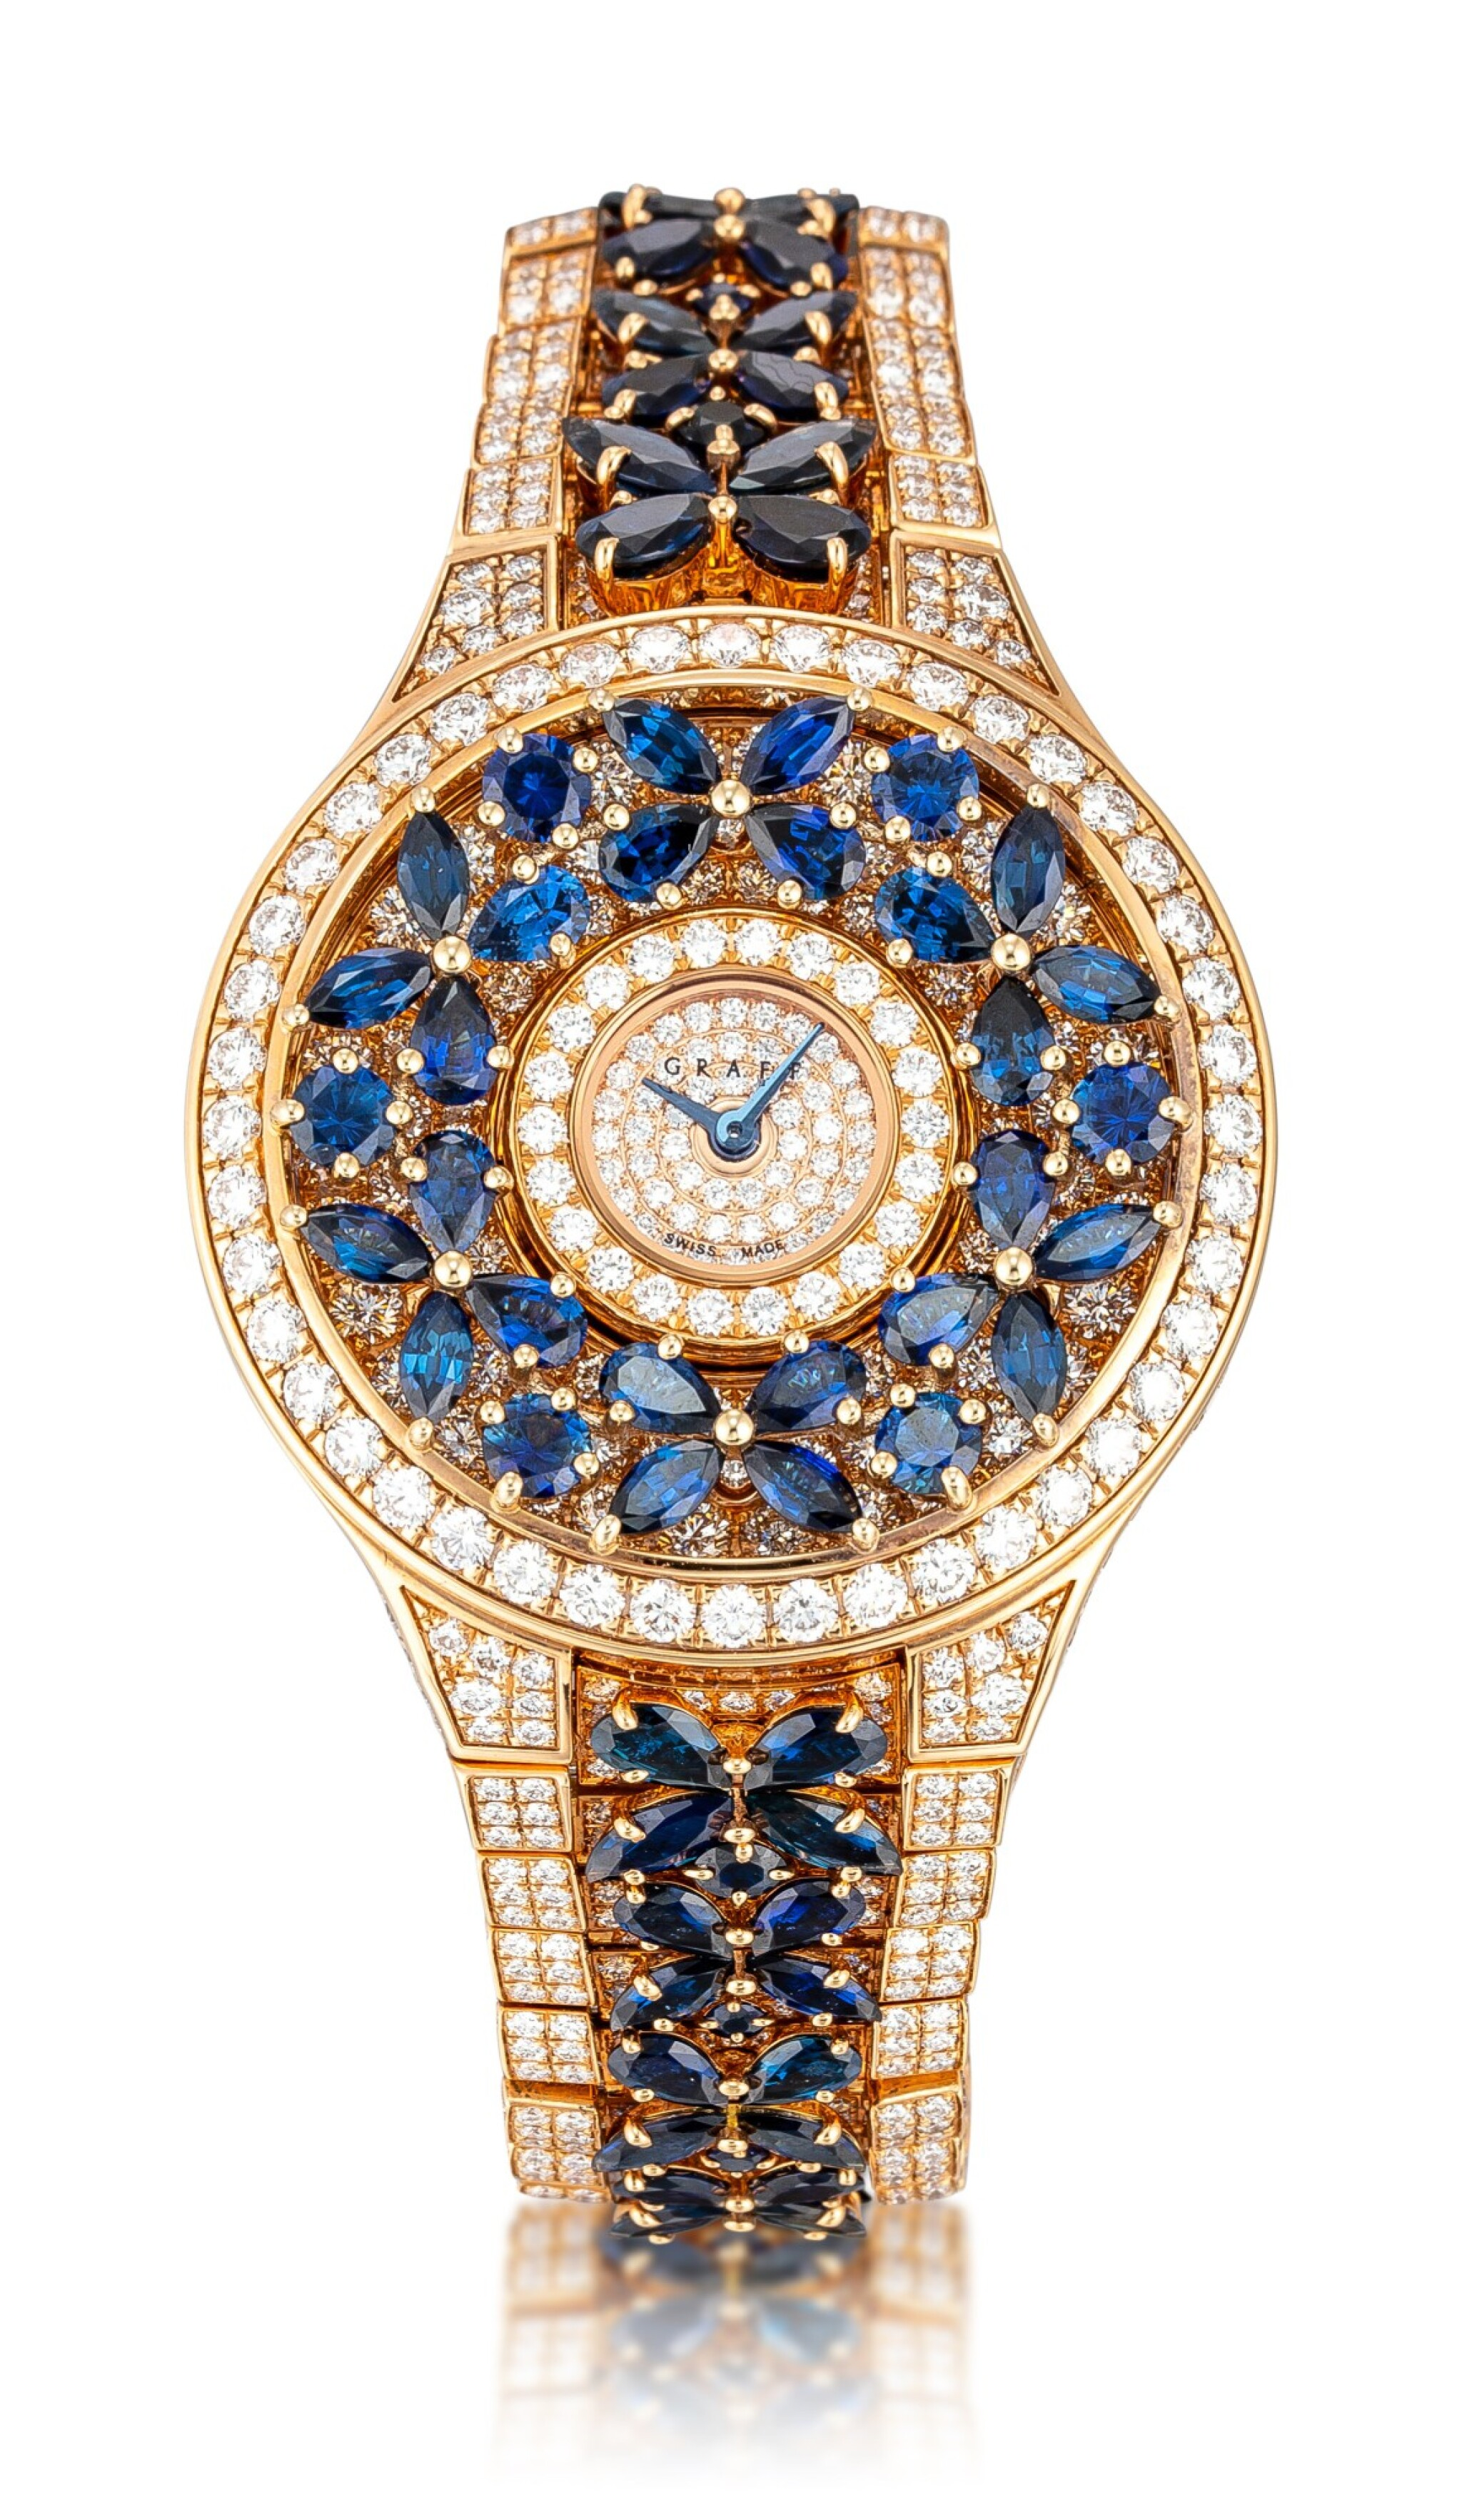 View full screen - View 1 of Lot 1067. 'Butterfly' Reference BF32PGSDSD, 1 Limited Edition Pink Gold, Blue Sapphire and Diamond-Set Wristwatch | 格拉夫| Butterfly編號BF32PGSDSD 1,限量版粉紅金鑲藍寶石及鑽石腕表,約2010年製.